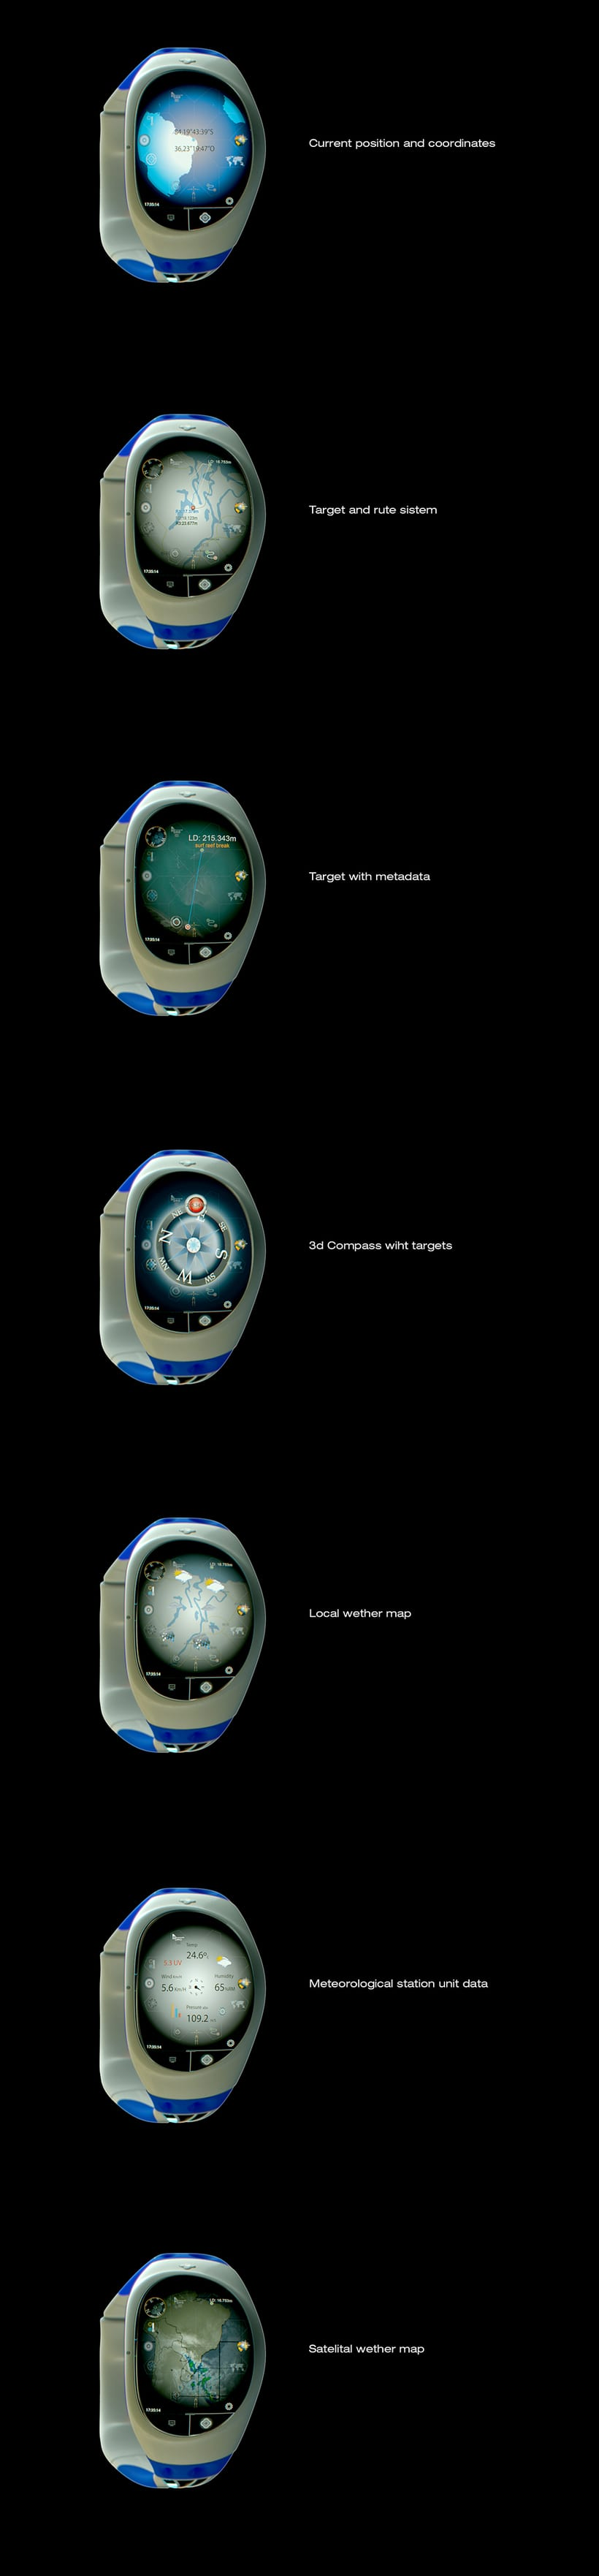 SIX SENSE SMARTWATCH & ADVENTURE DEVICE.  9